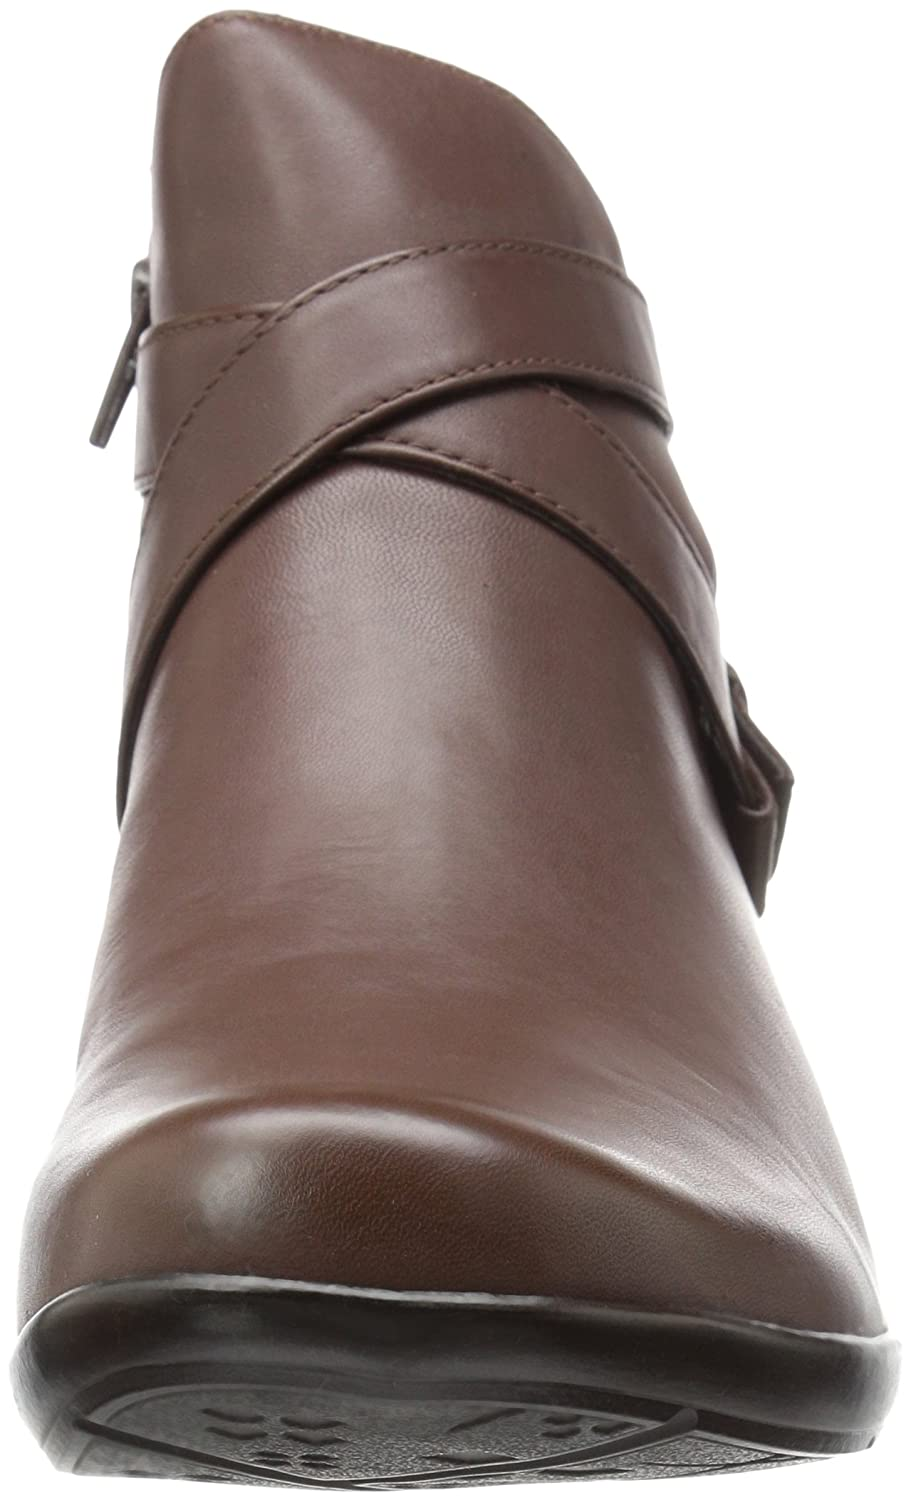 Naturalizer Women's Cassandra Ankle Bootie B06XC6QSMR 12 2W US|Brown